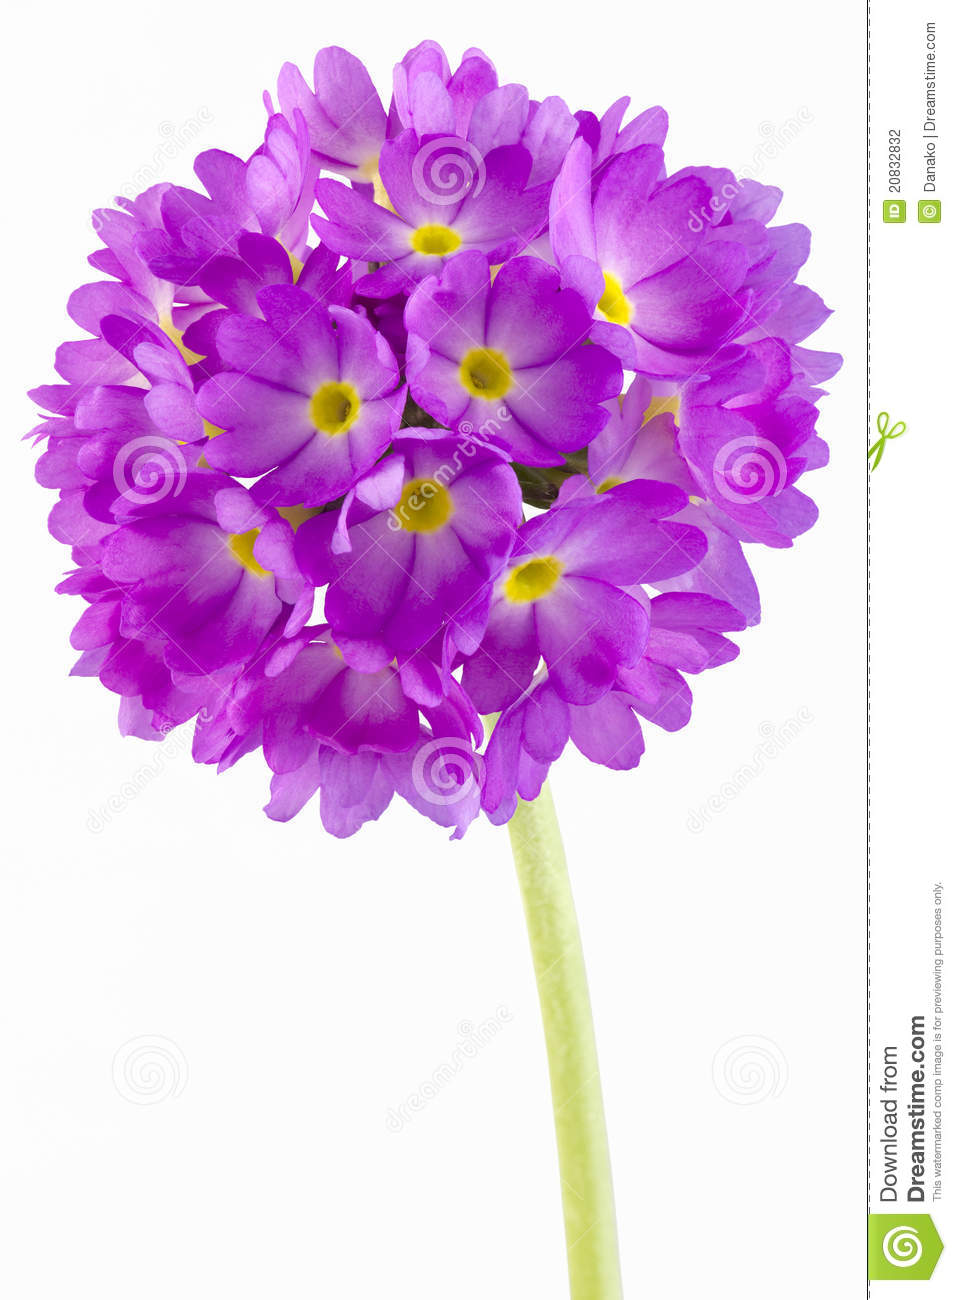 Primula clipart #13, Download drawings